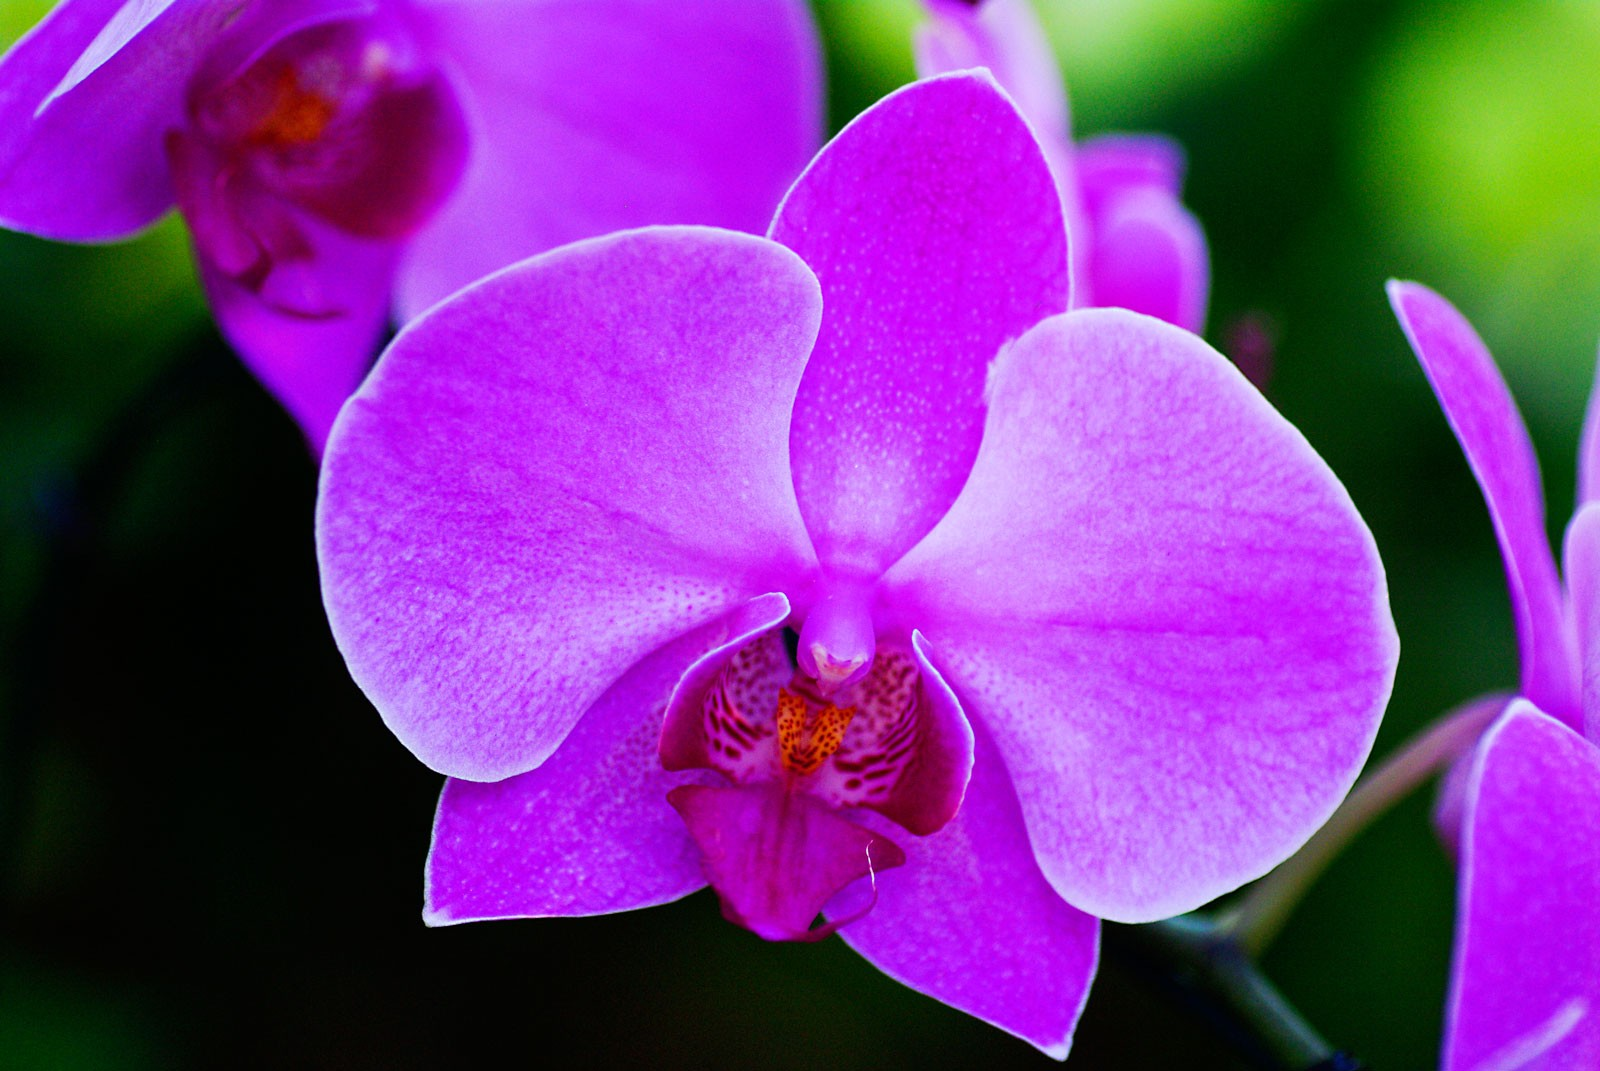 Flower meanings orchid symbolism on whats your sign flower meanings and orchid meanings mightylinksfo